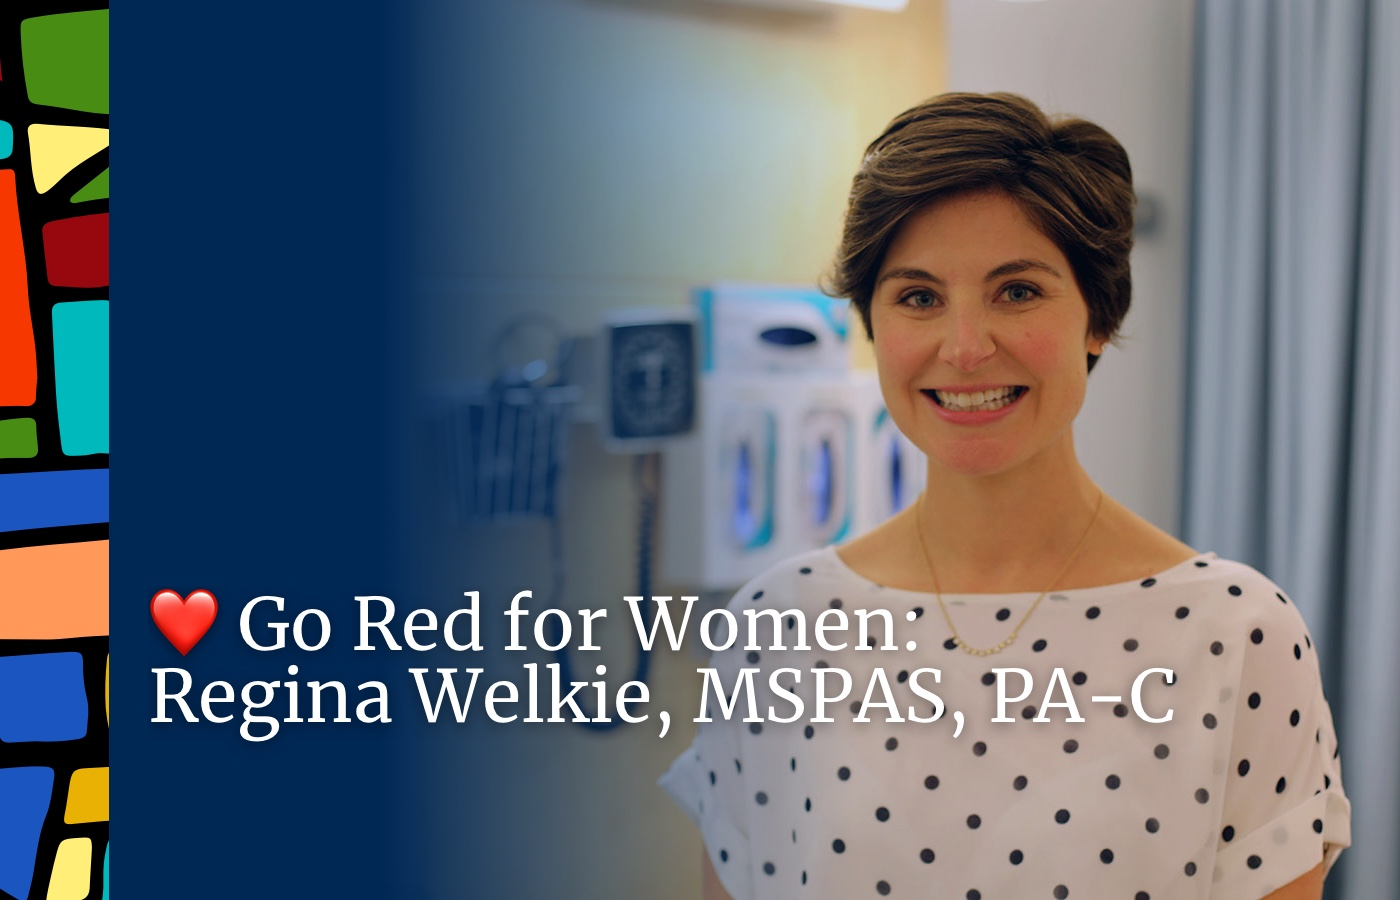 Go Red for Women: